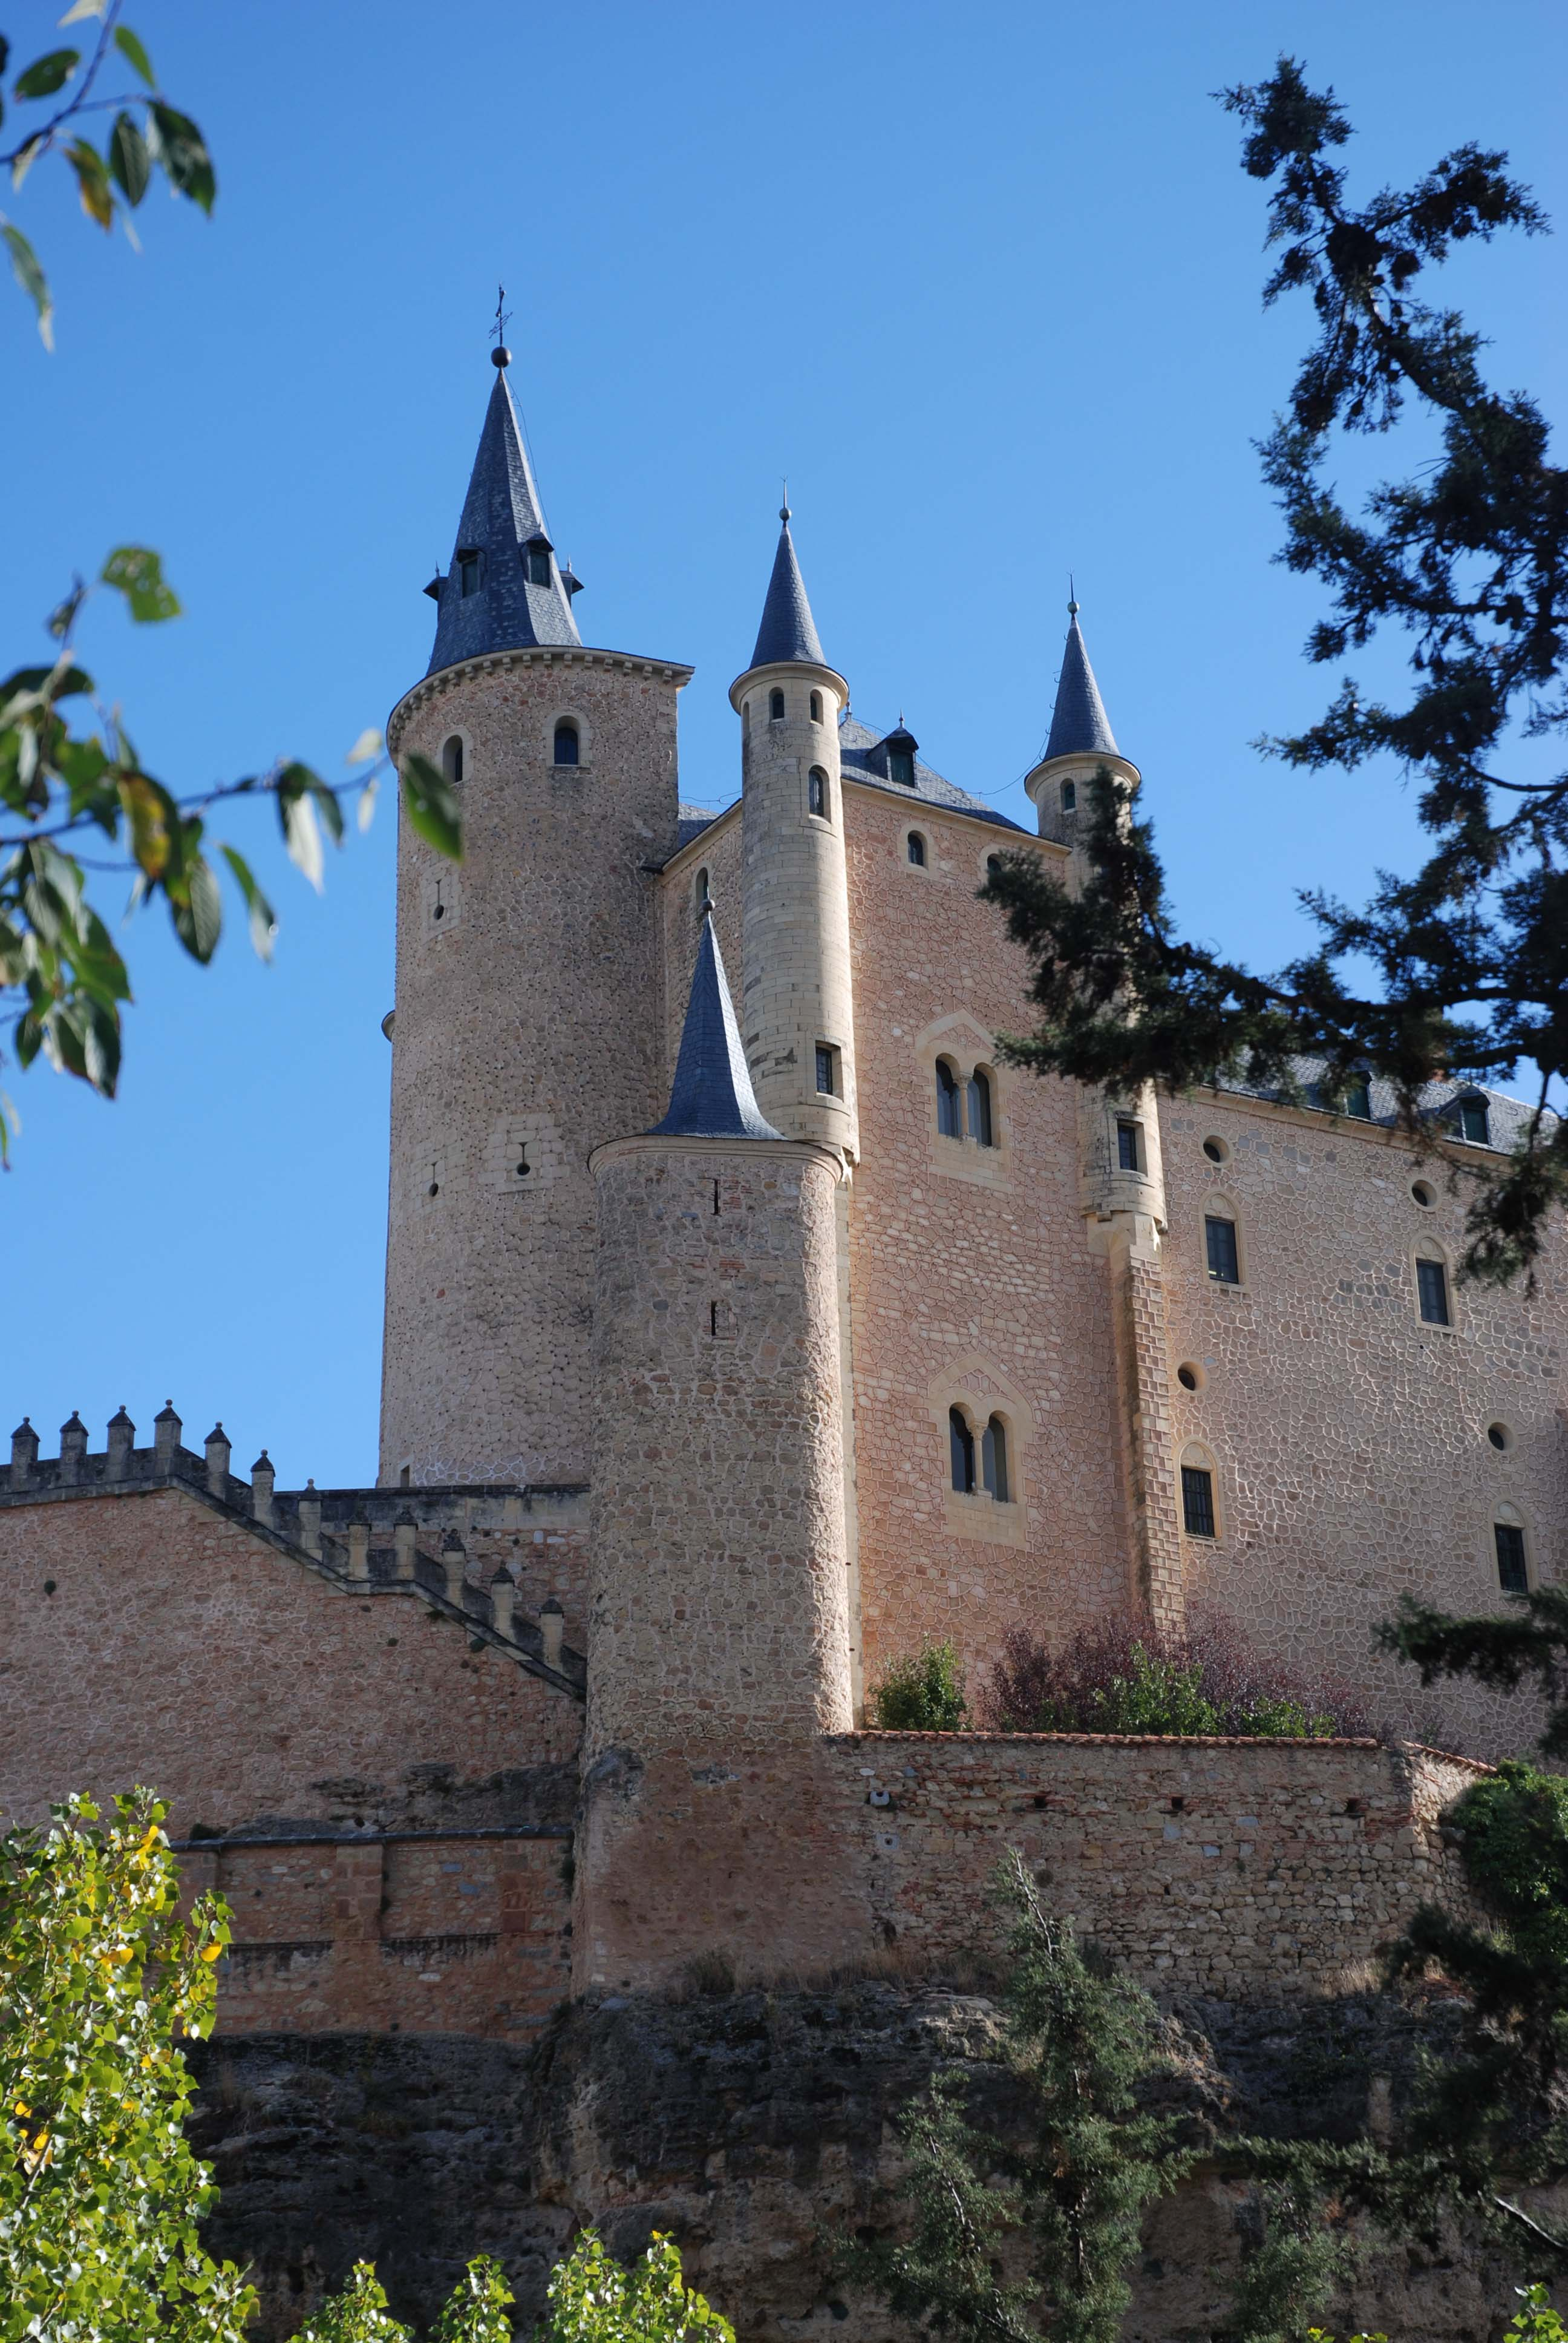 The Alcazar at Segovia